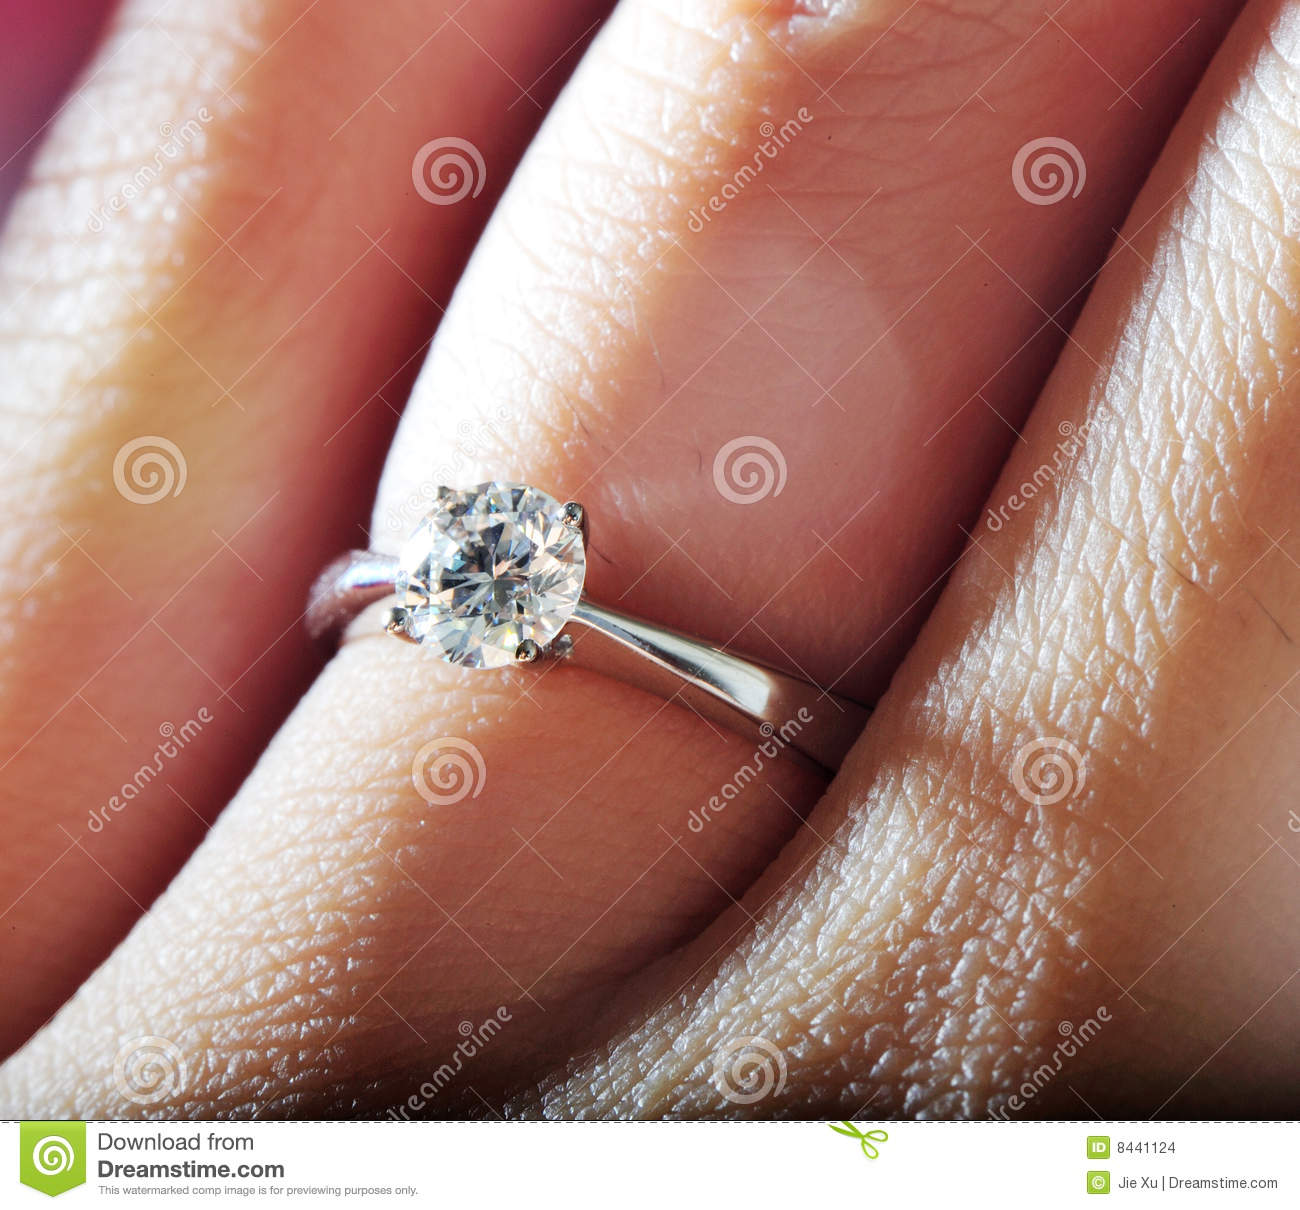 Hand wearing diamond ring